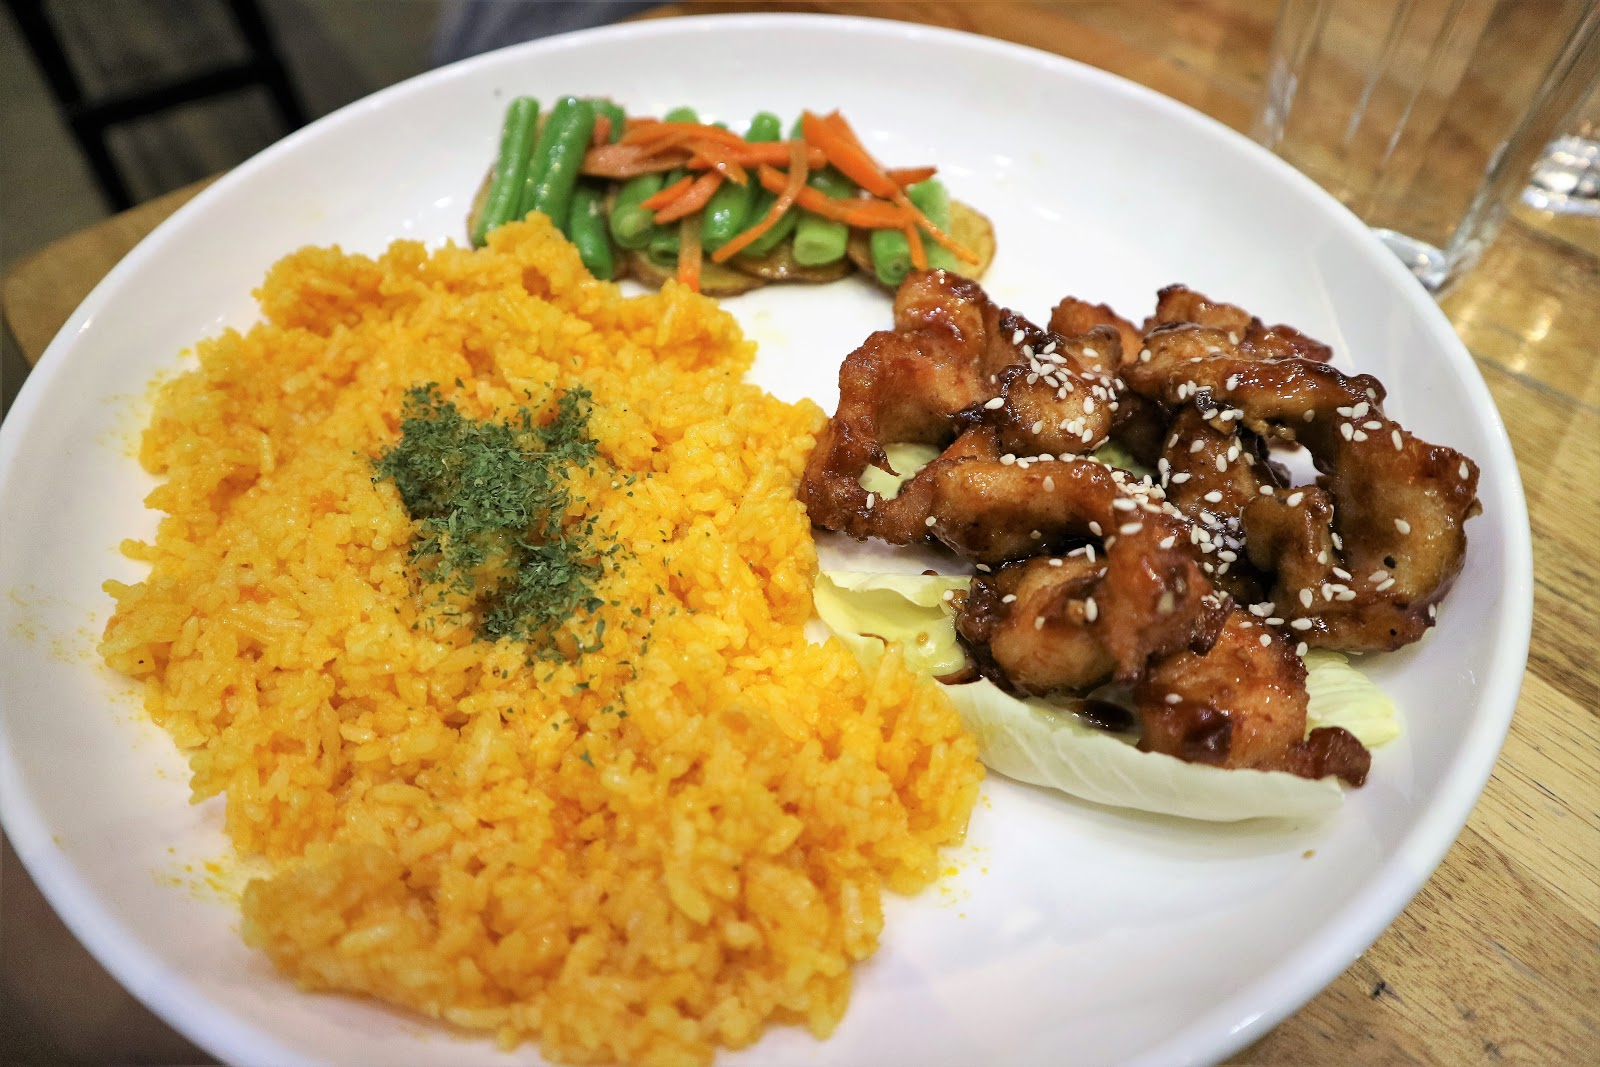 Meatyard's Honey Soy Garlic Chicken Crunch (PHP 160)